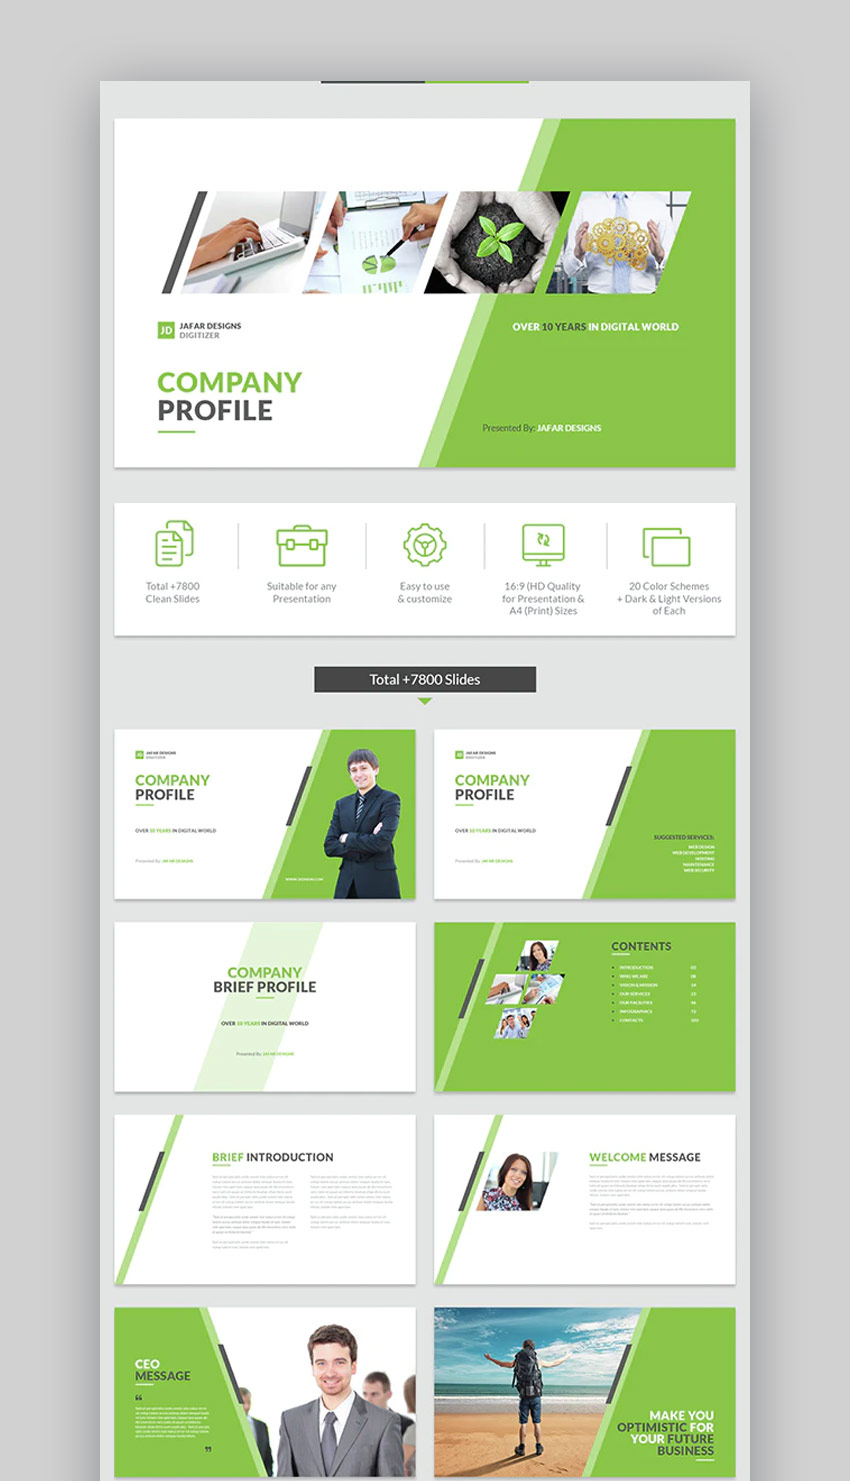 Company Profile PowerPoint design template